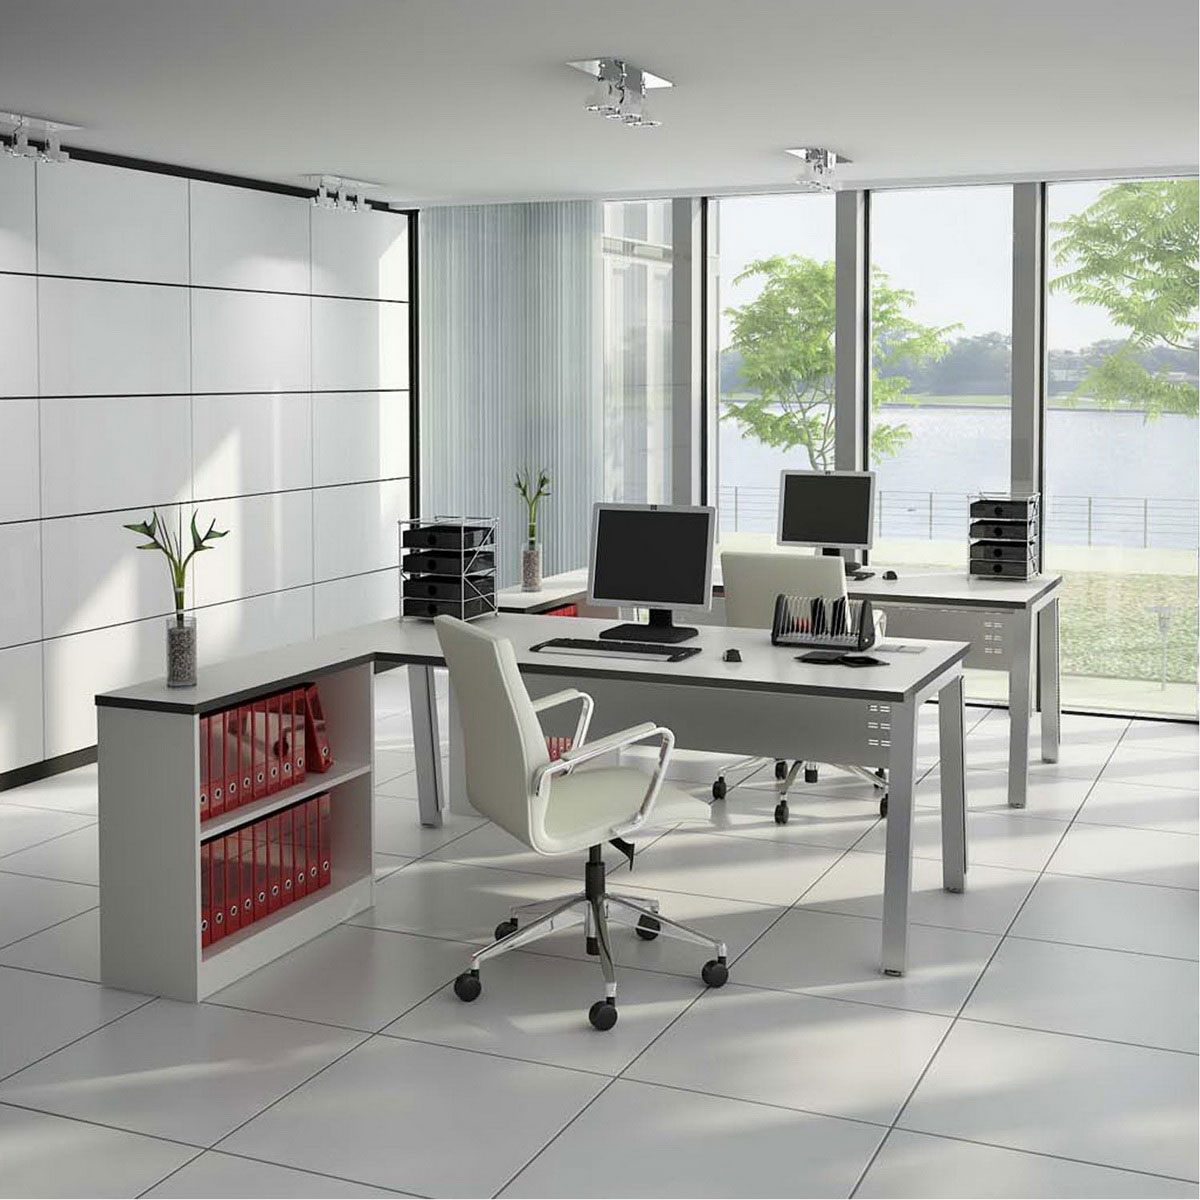 Office interior design dreams house furniture for Interior designers office